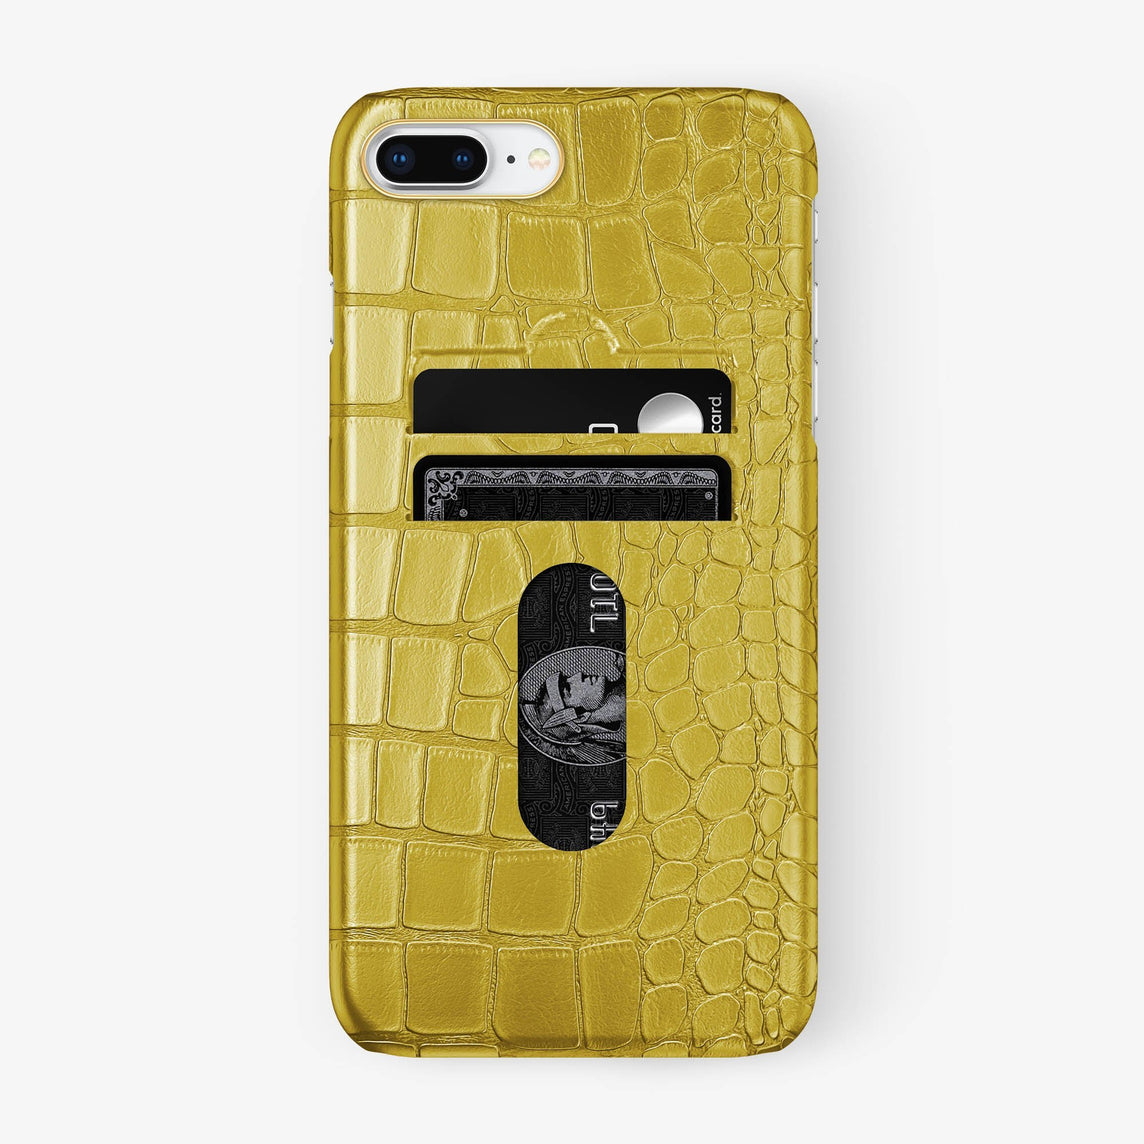 Alligator Card Holder Case iPhone 7/8 Plus | Yellow - Yellow Gold - Hadoro